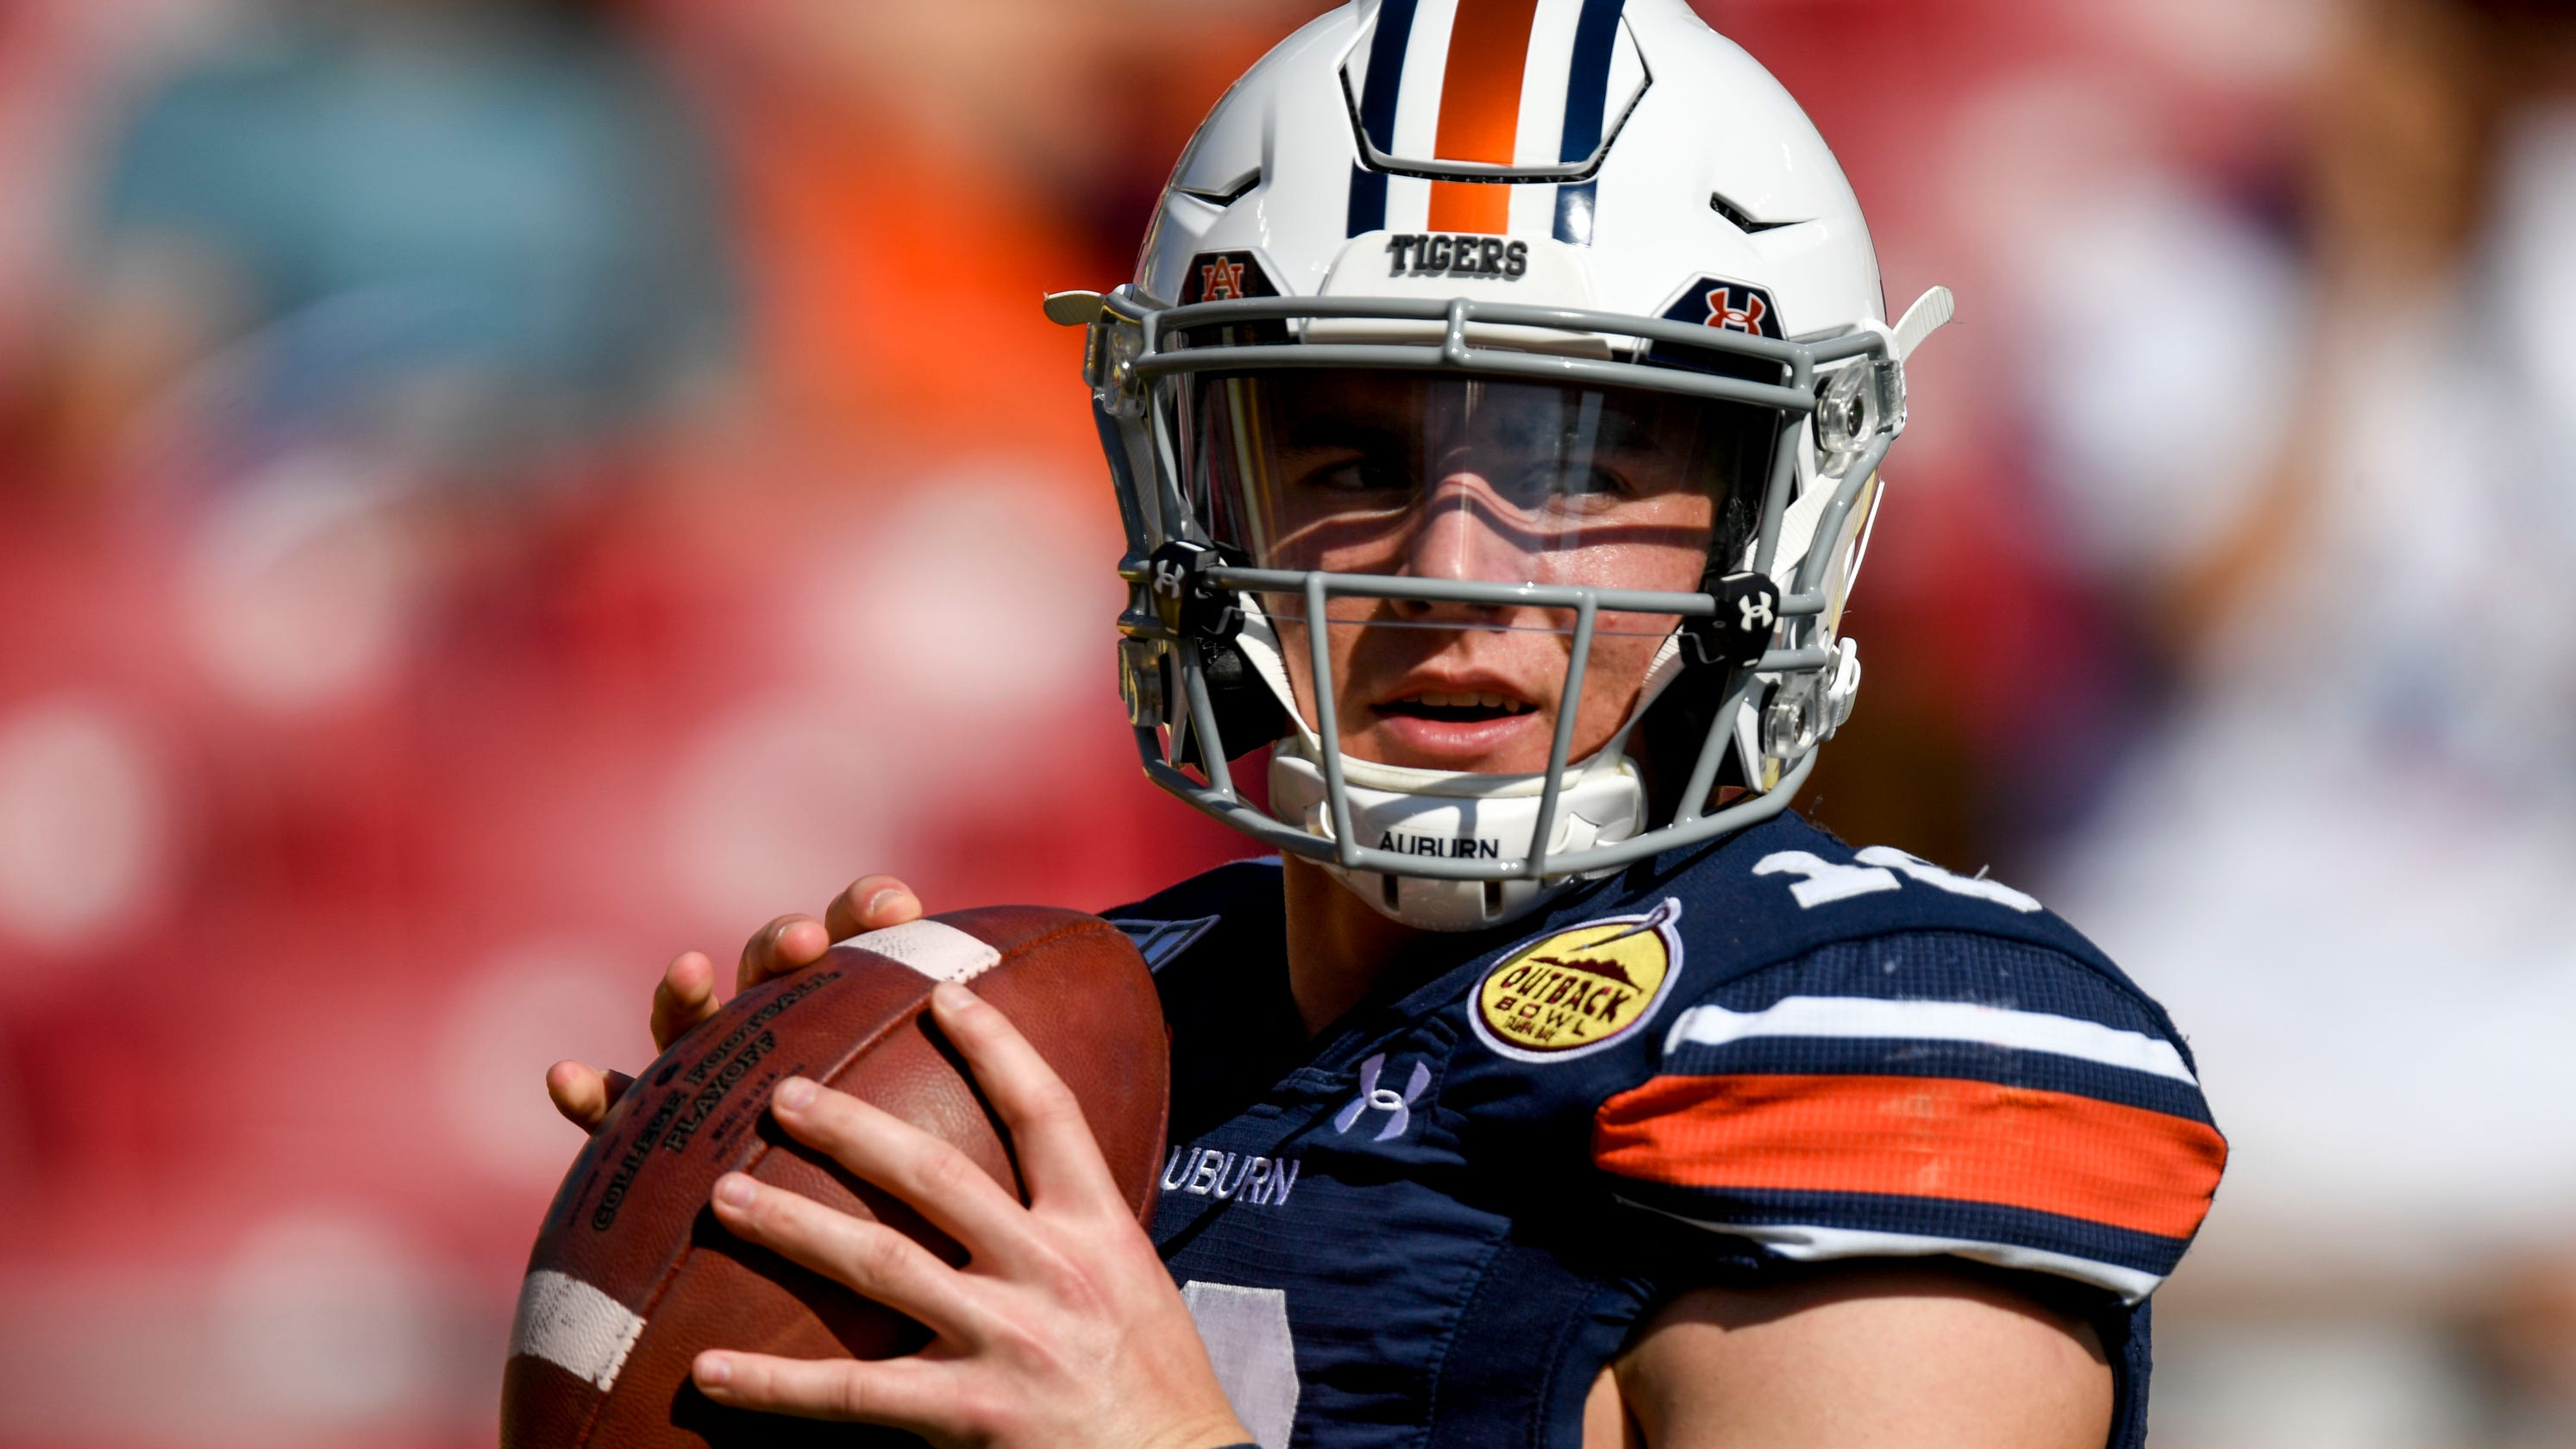 How to watch or stream Kentucky at Auburn football: Game time, TV channel, betting line